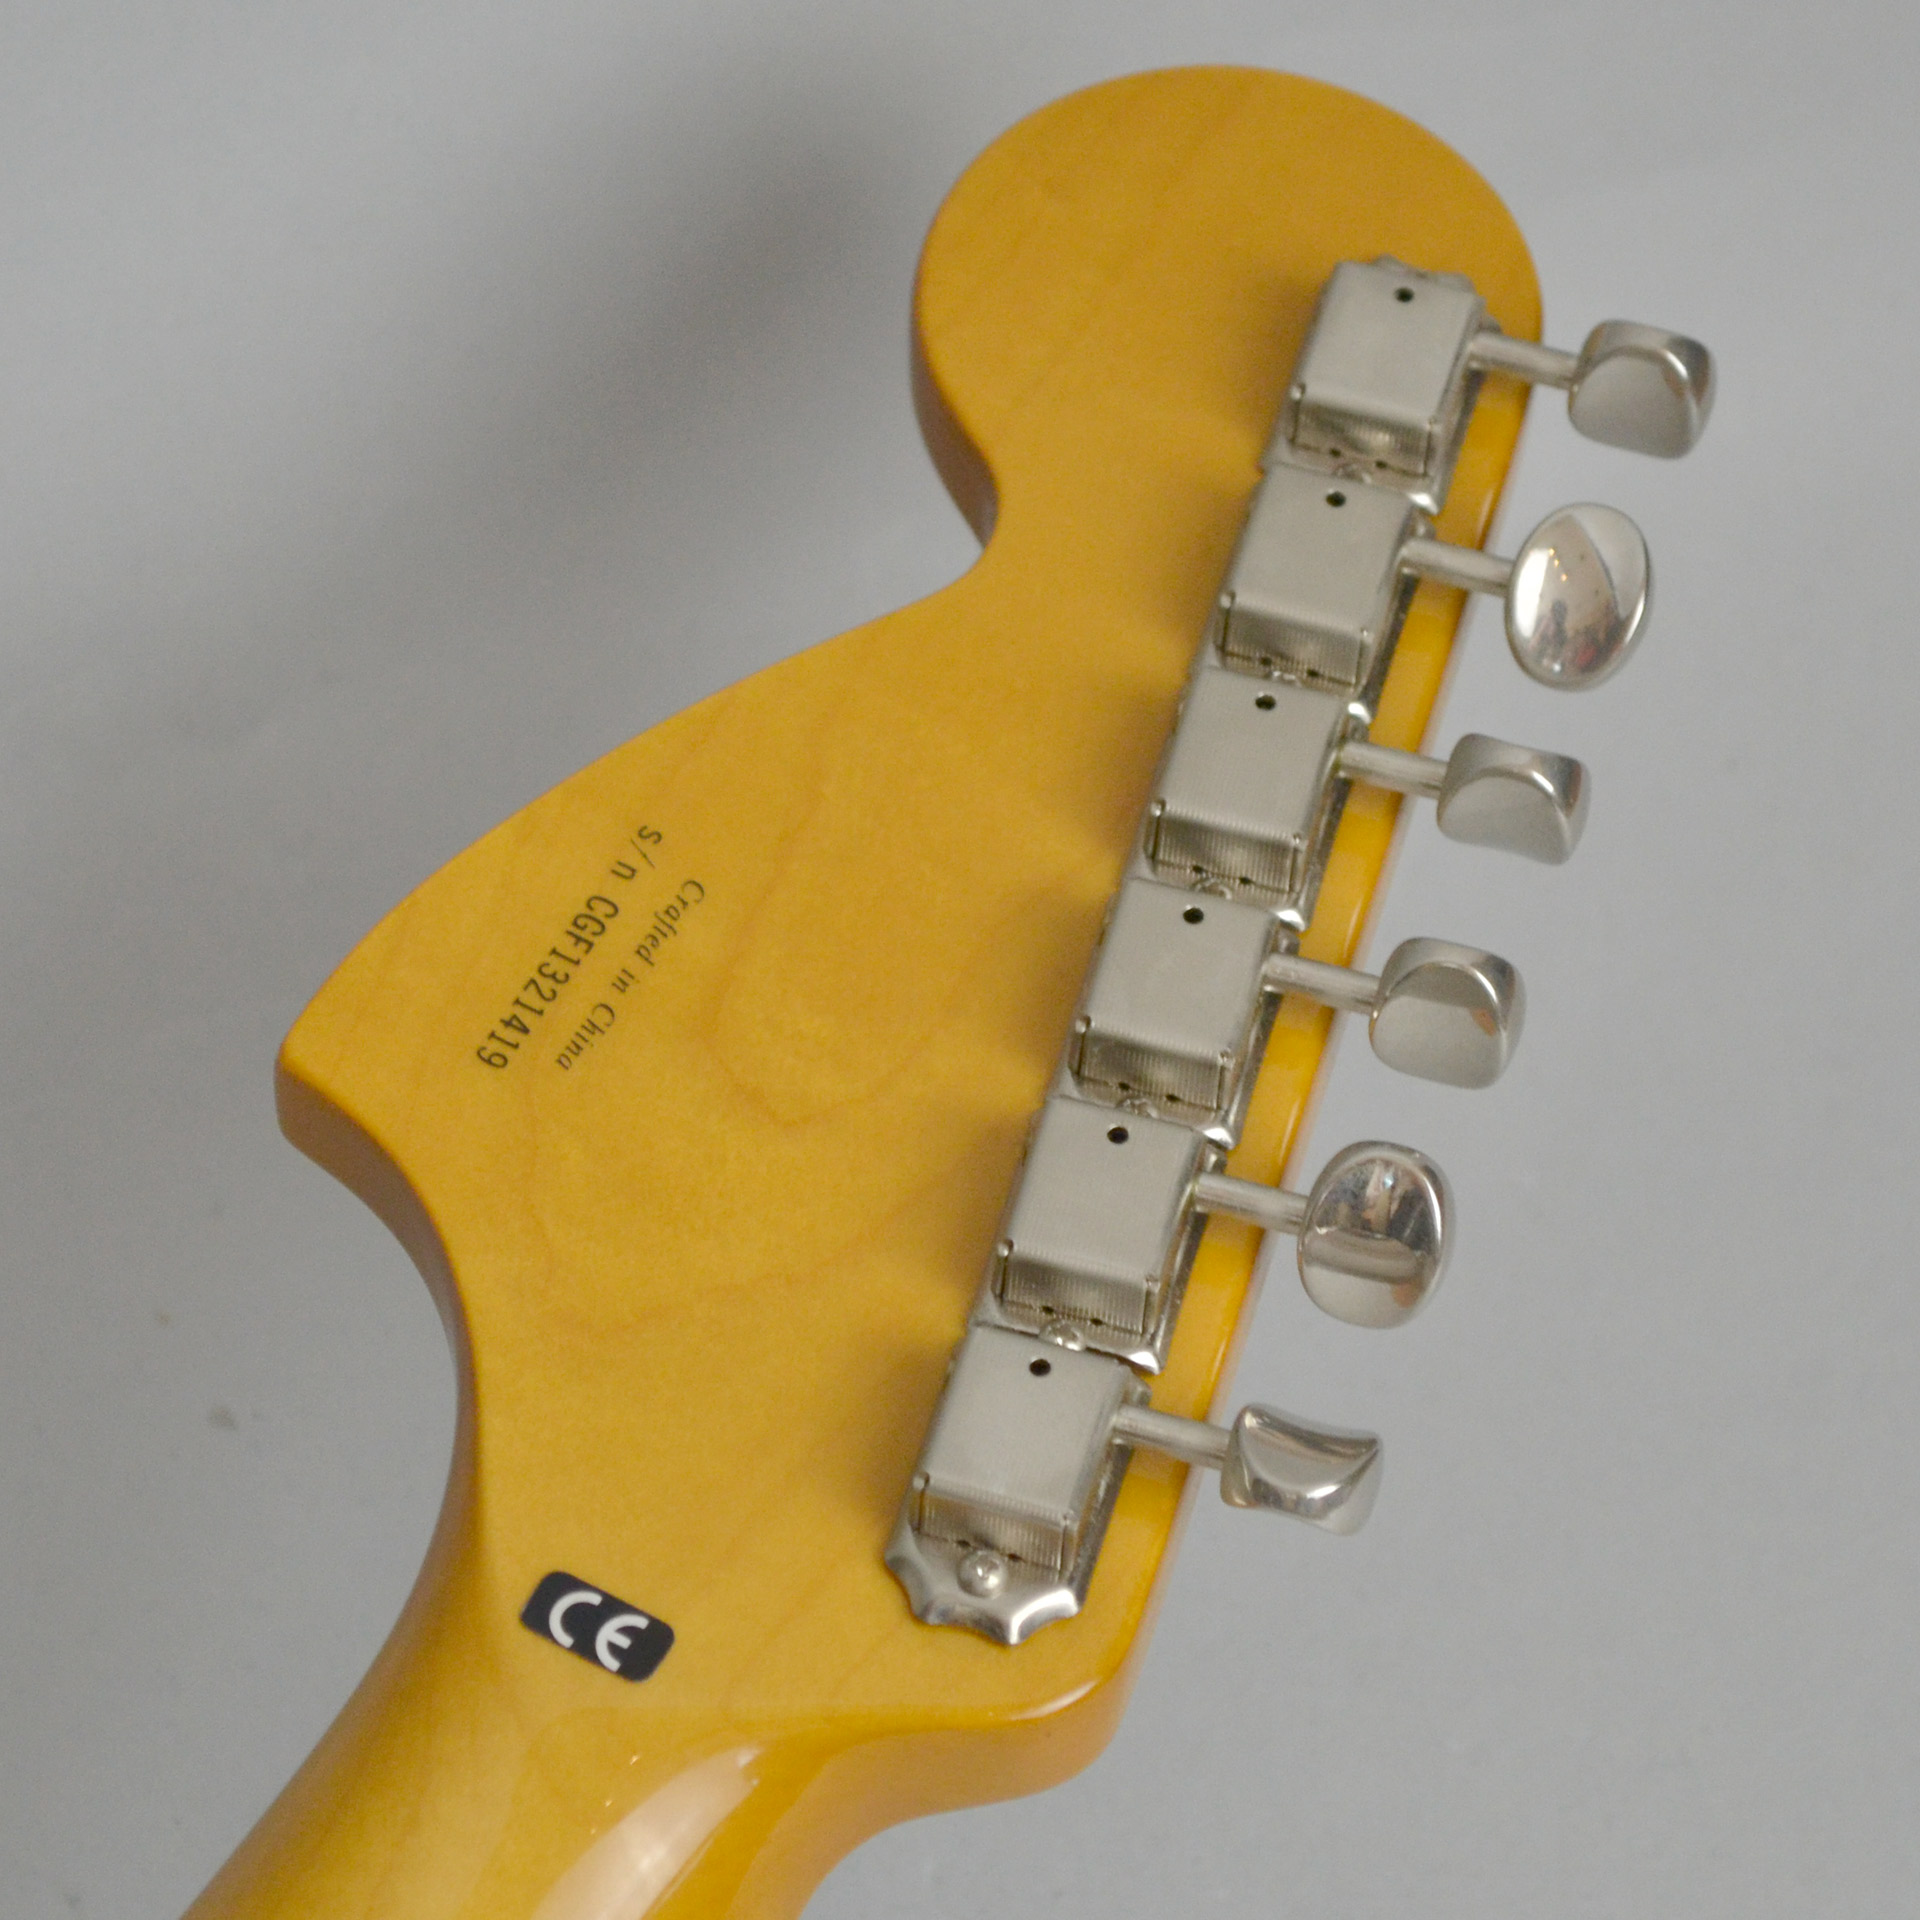 Modern Player Mustangのケース・その他画像